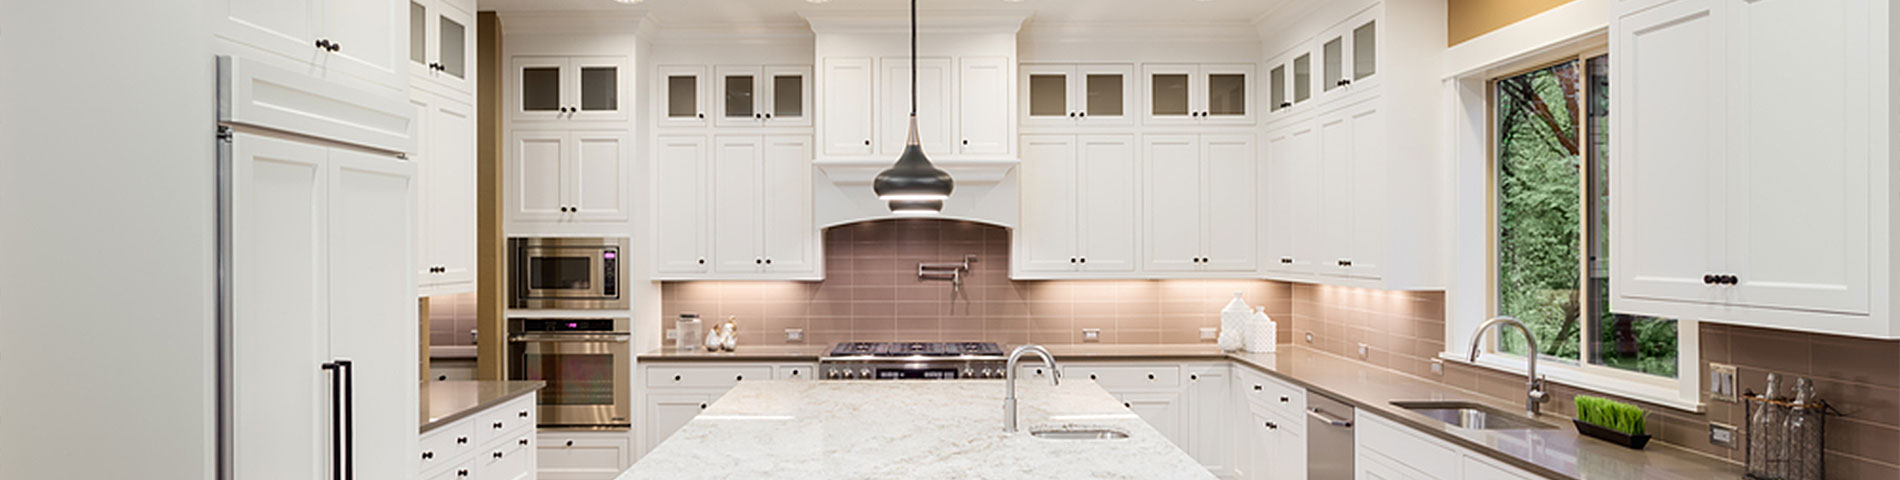 kitchen remodeling service in wichita, ks | cabinet installation